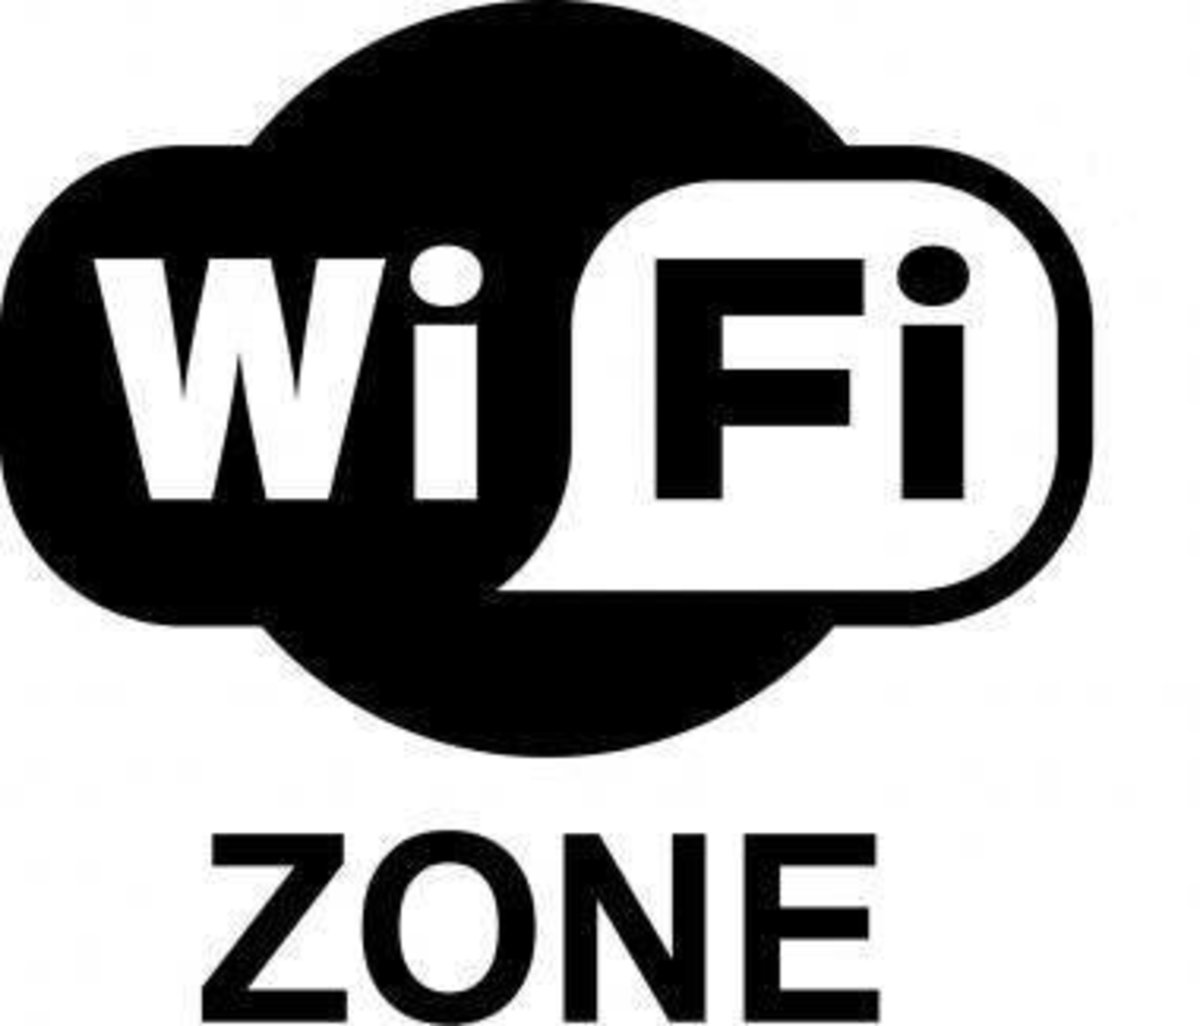 How to Build a Large Citywide WiFi Hotspot/Zone | TurboFuture